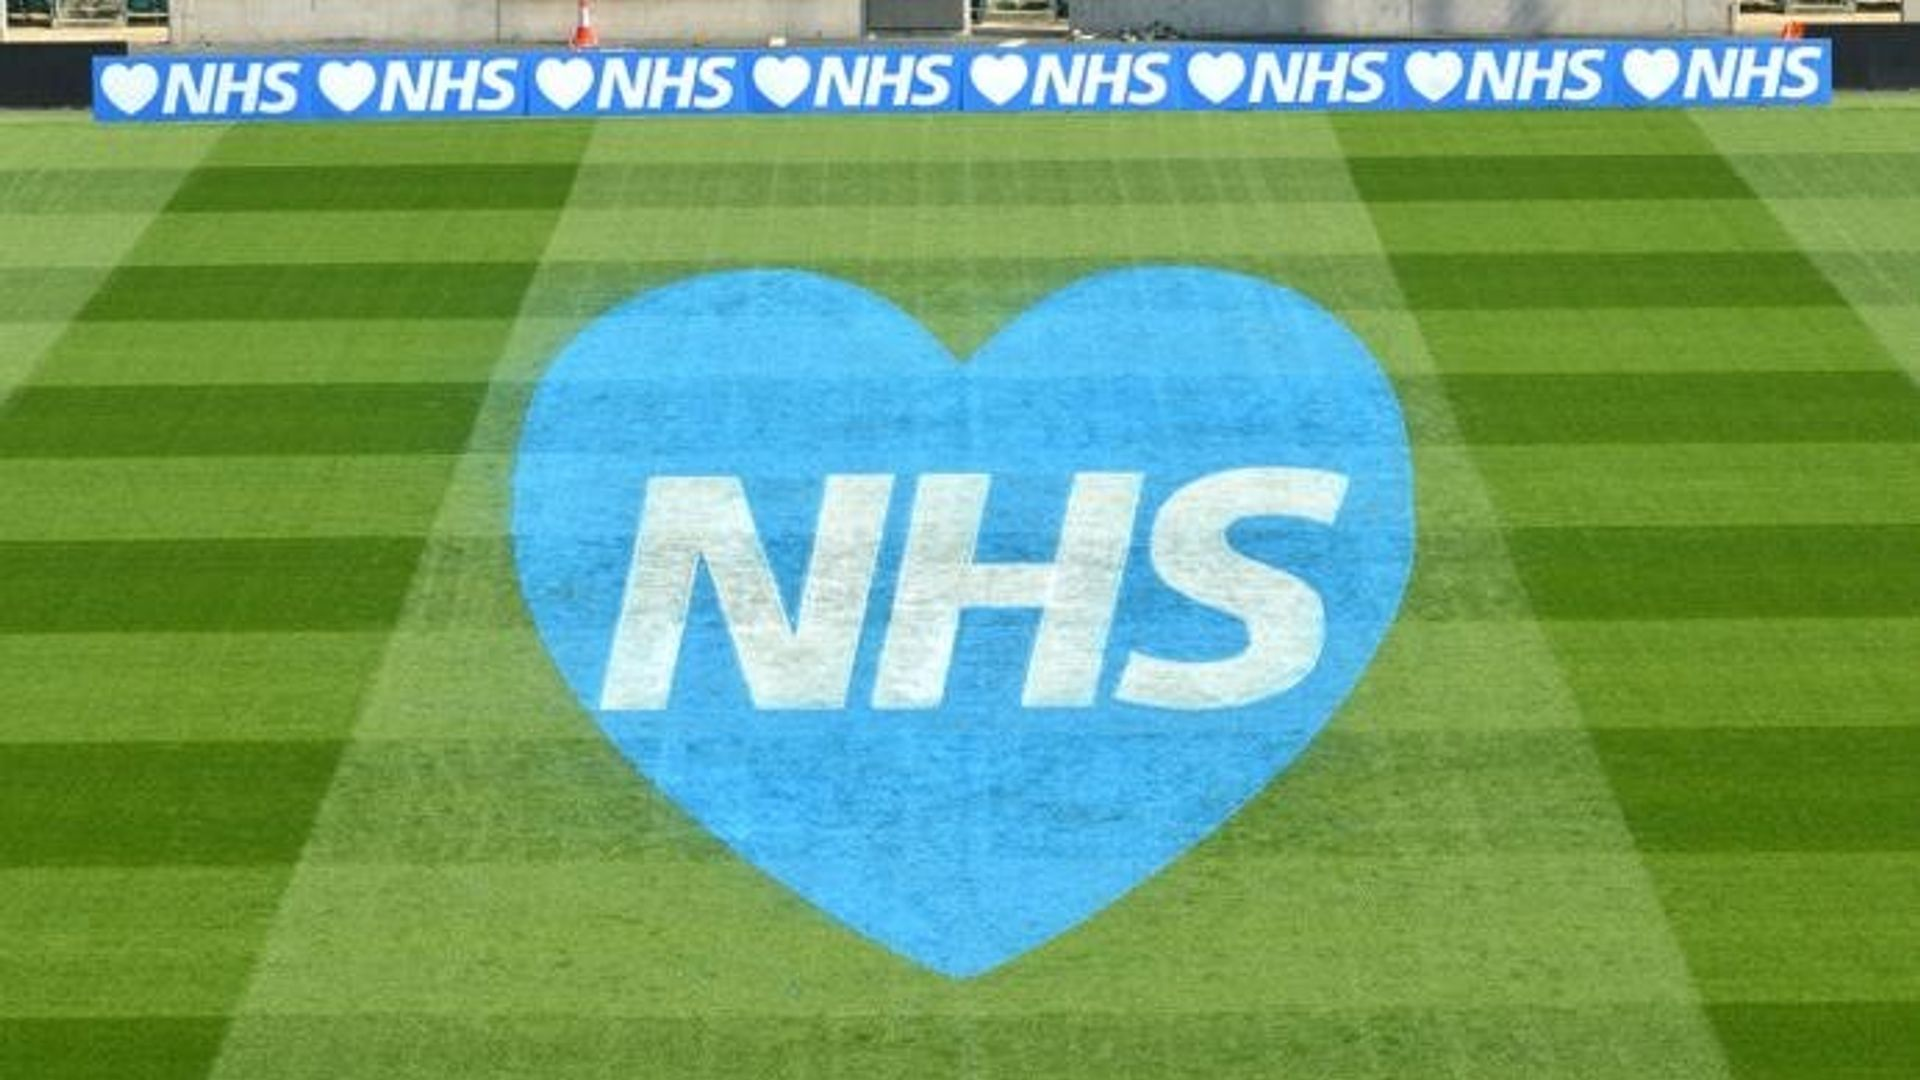 Sports to come together to celebrate NHS - sky sports